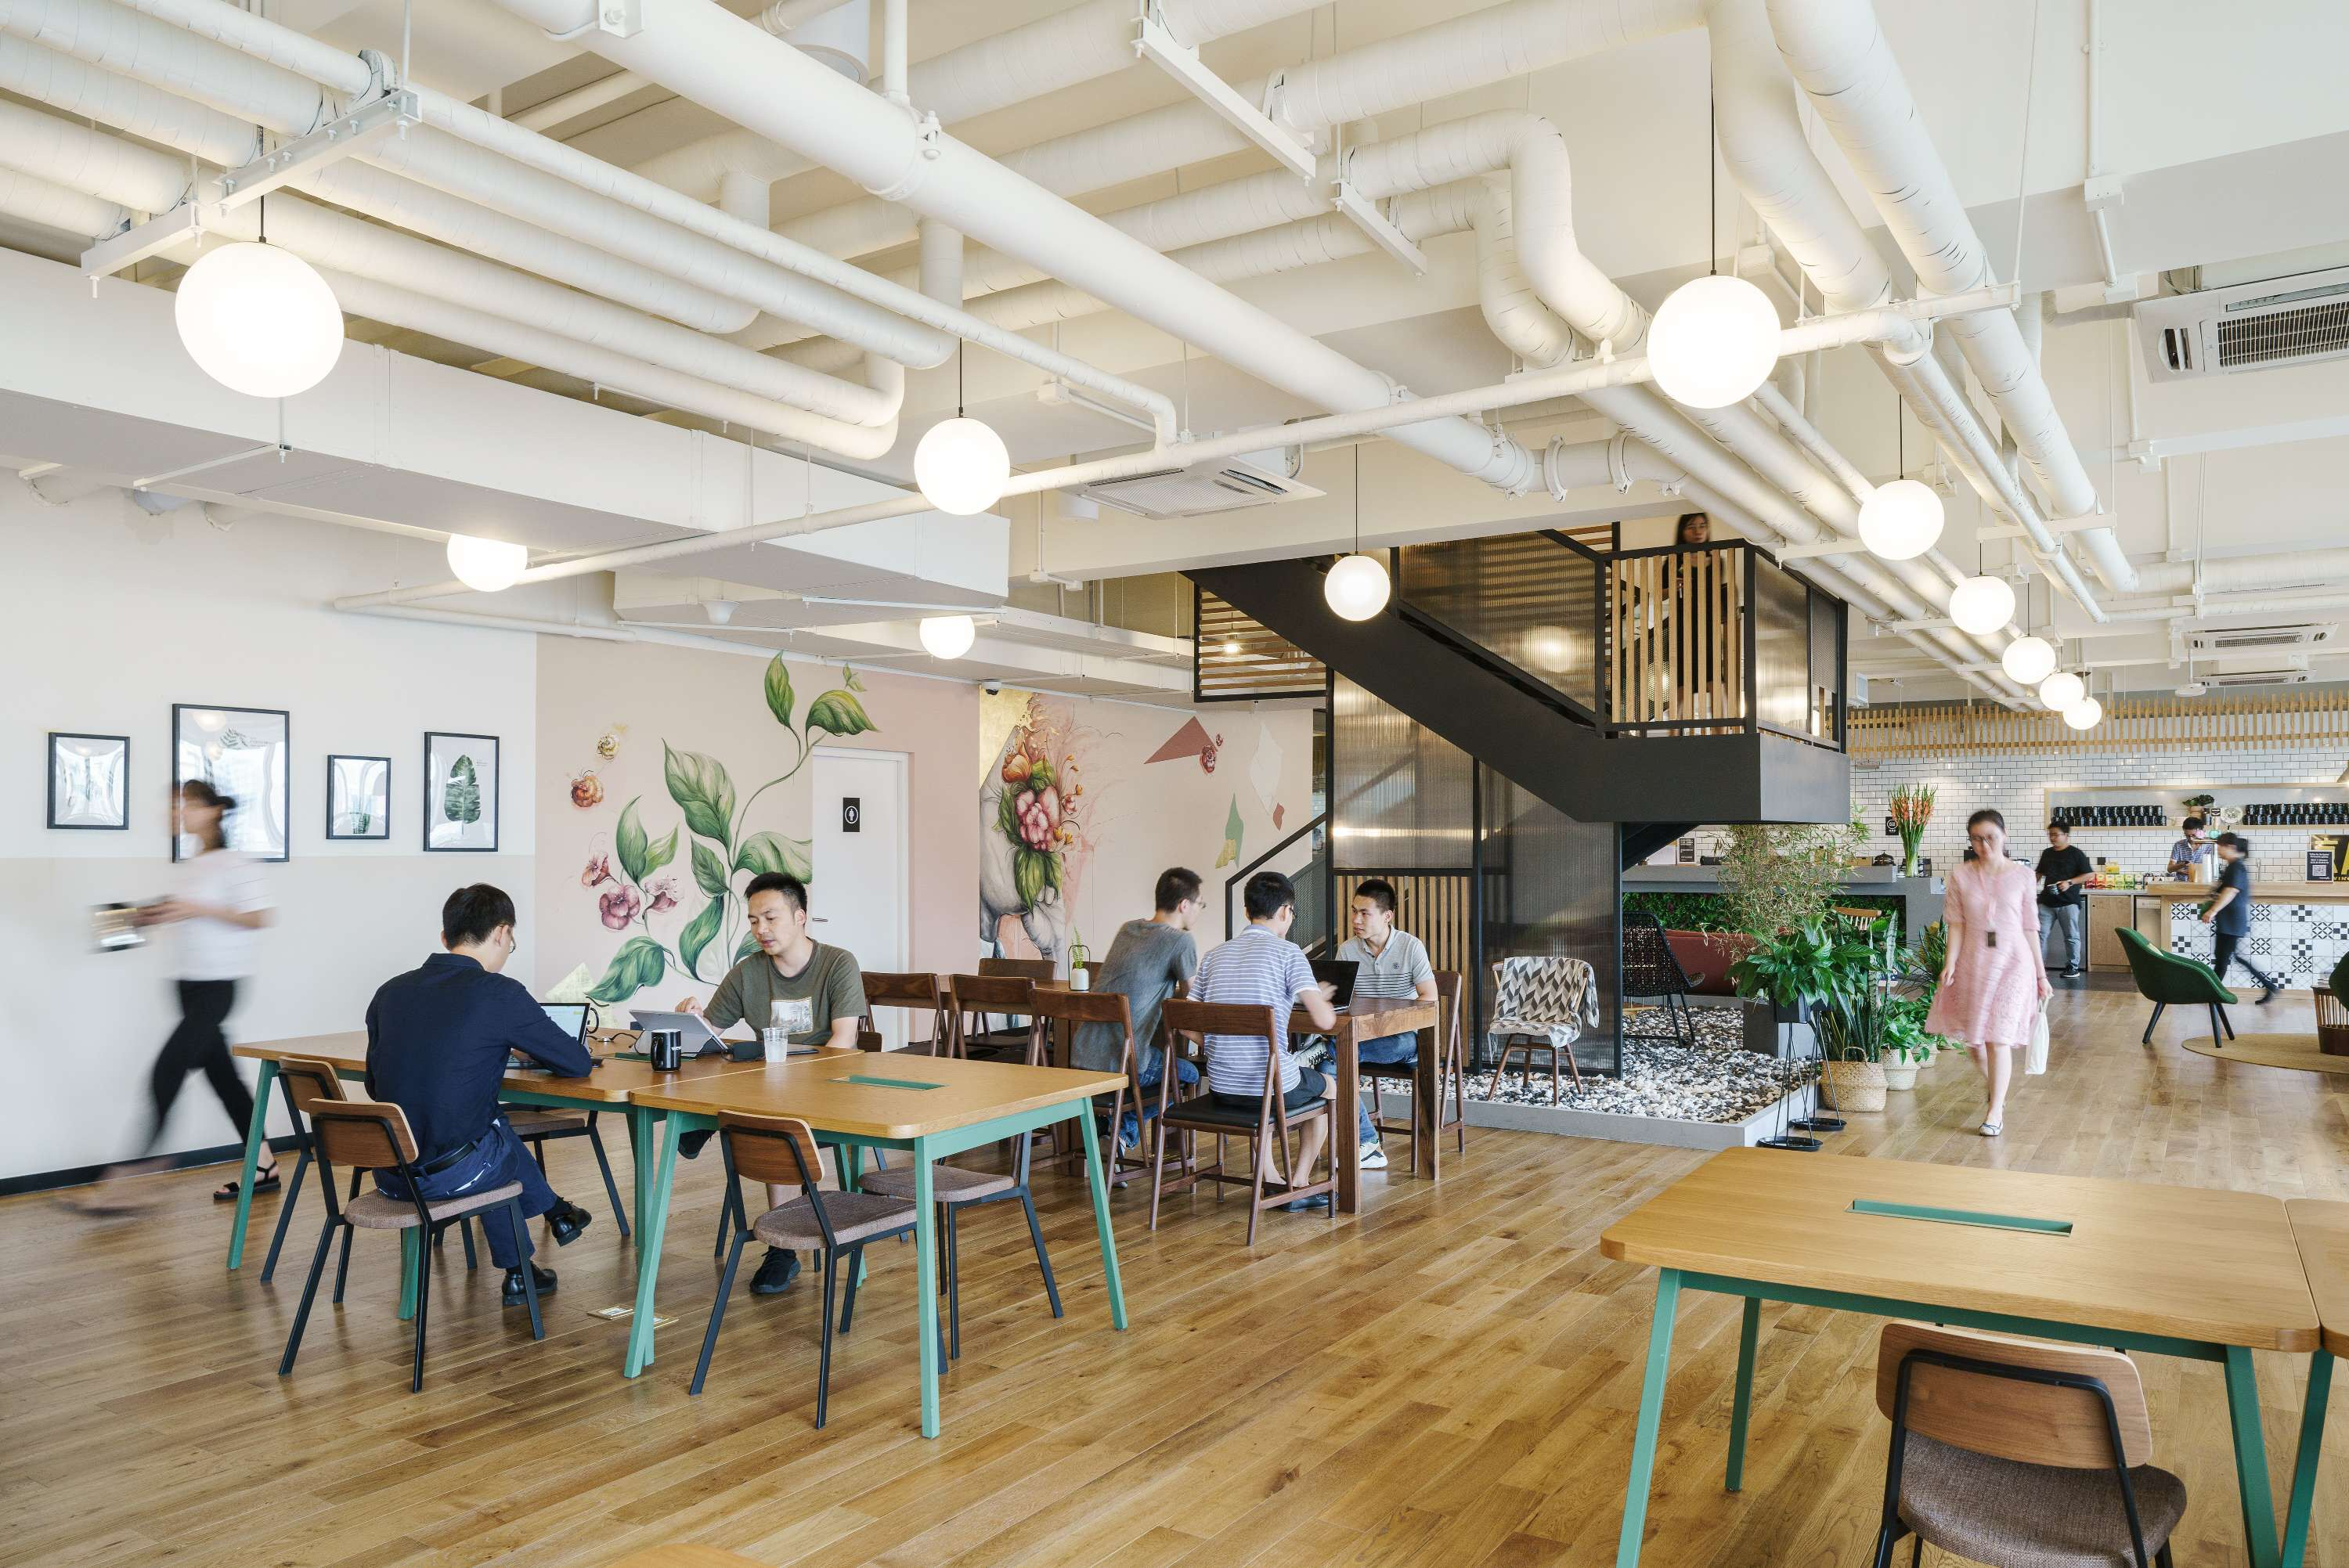 Wework Marylebone Available Now Through Findaservicedoffice Com Prices Starting From Private Office 1 080 Mo Flexible Work Space Coworking Interior Design